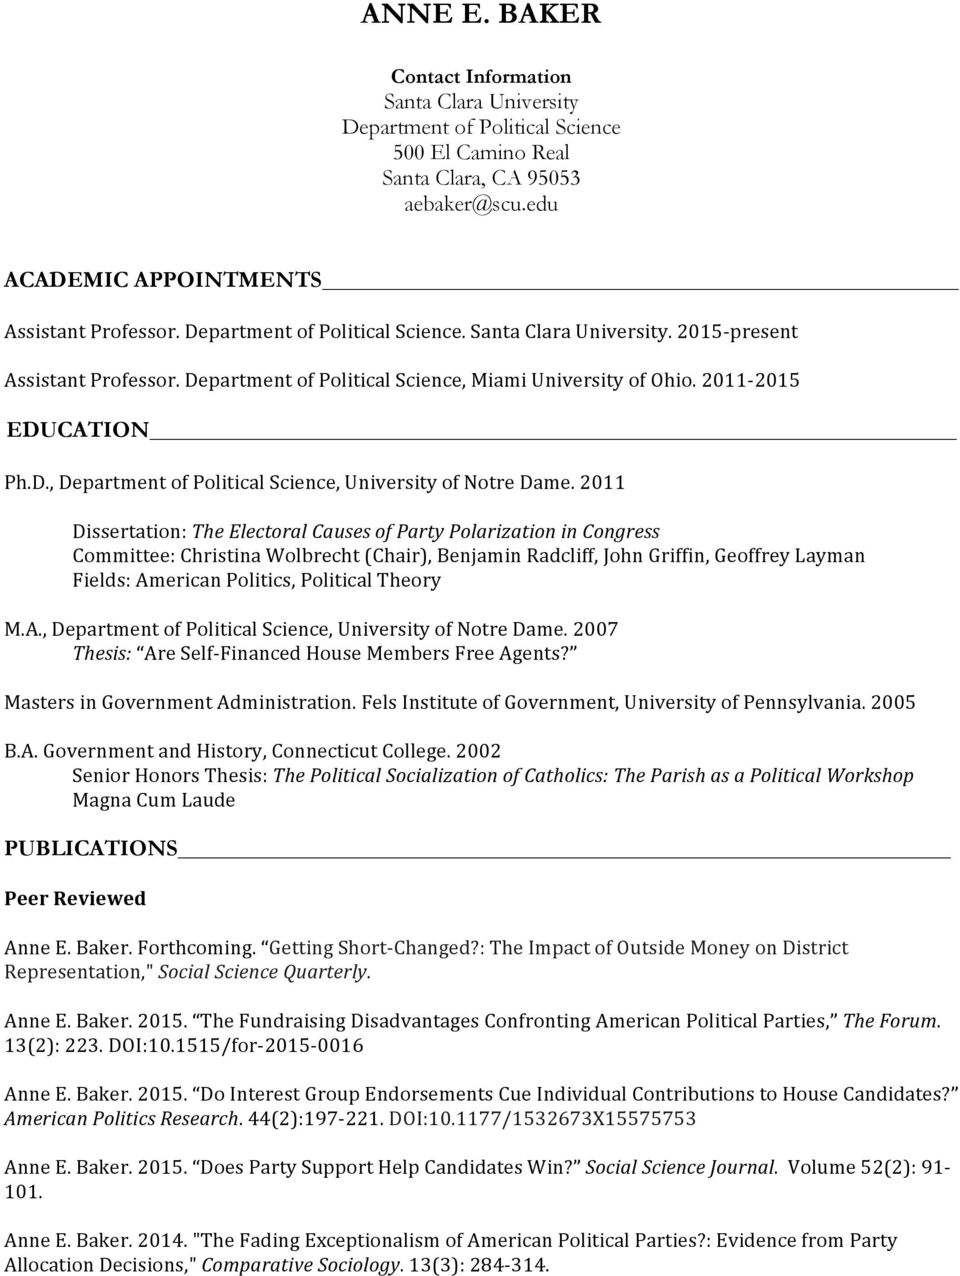 2011 Dissertation: The Electoral Causes of Party Polarization in Congress Committee: Christina Wolbrecht (Chair), Benjamin Radcliff, John Griffin, Geoffrey Layman Fields: American Politics, Political